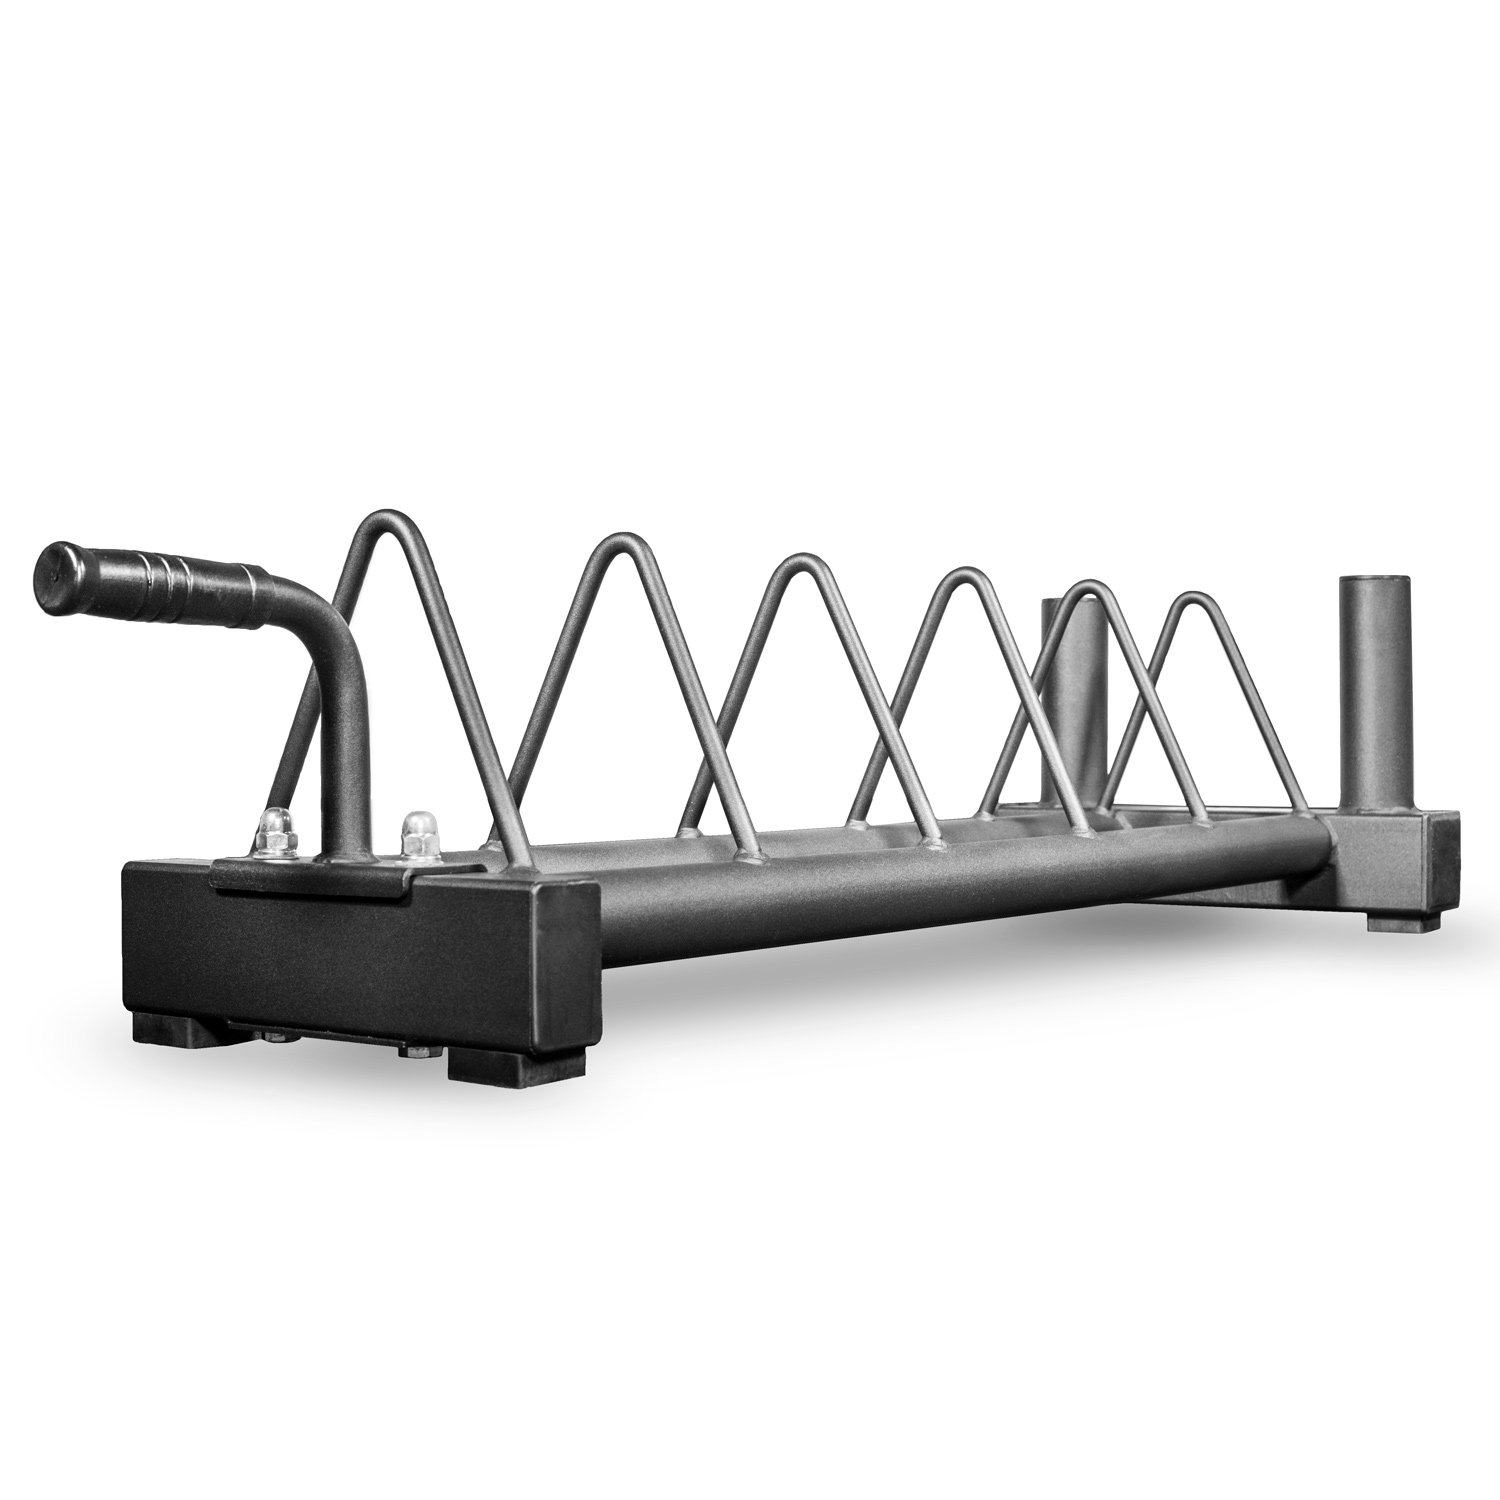 Rep V2 Horizontal Olympic Plate Rack with Wheels and Barbell Storage by Rep Fitness